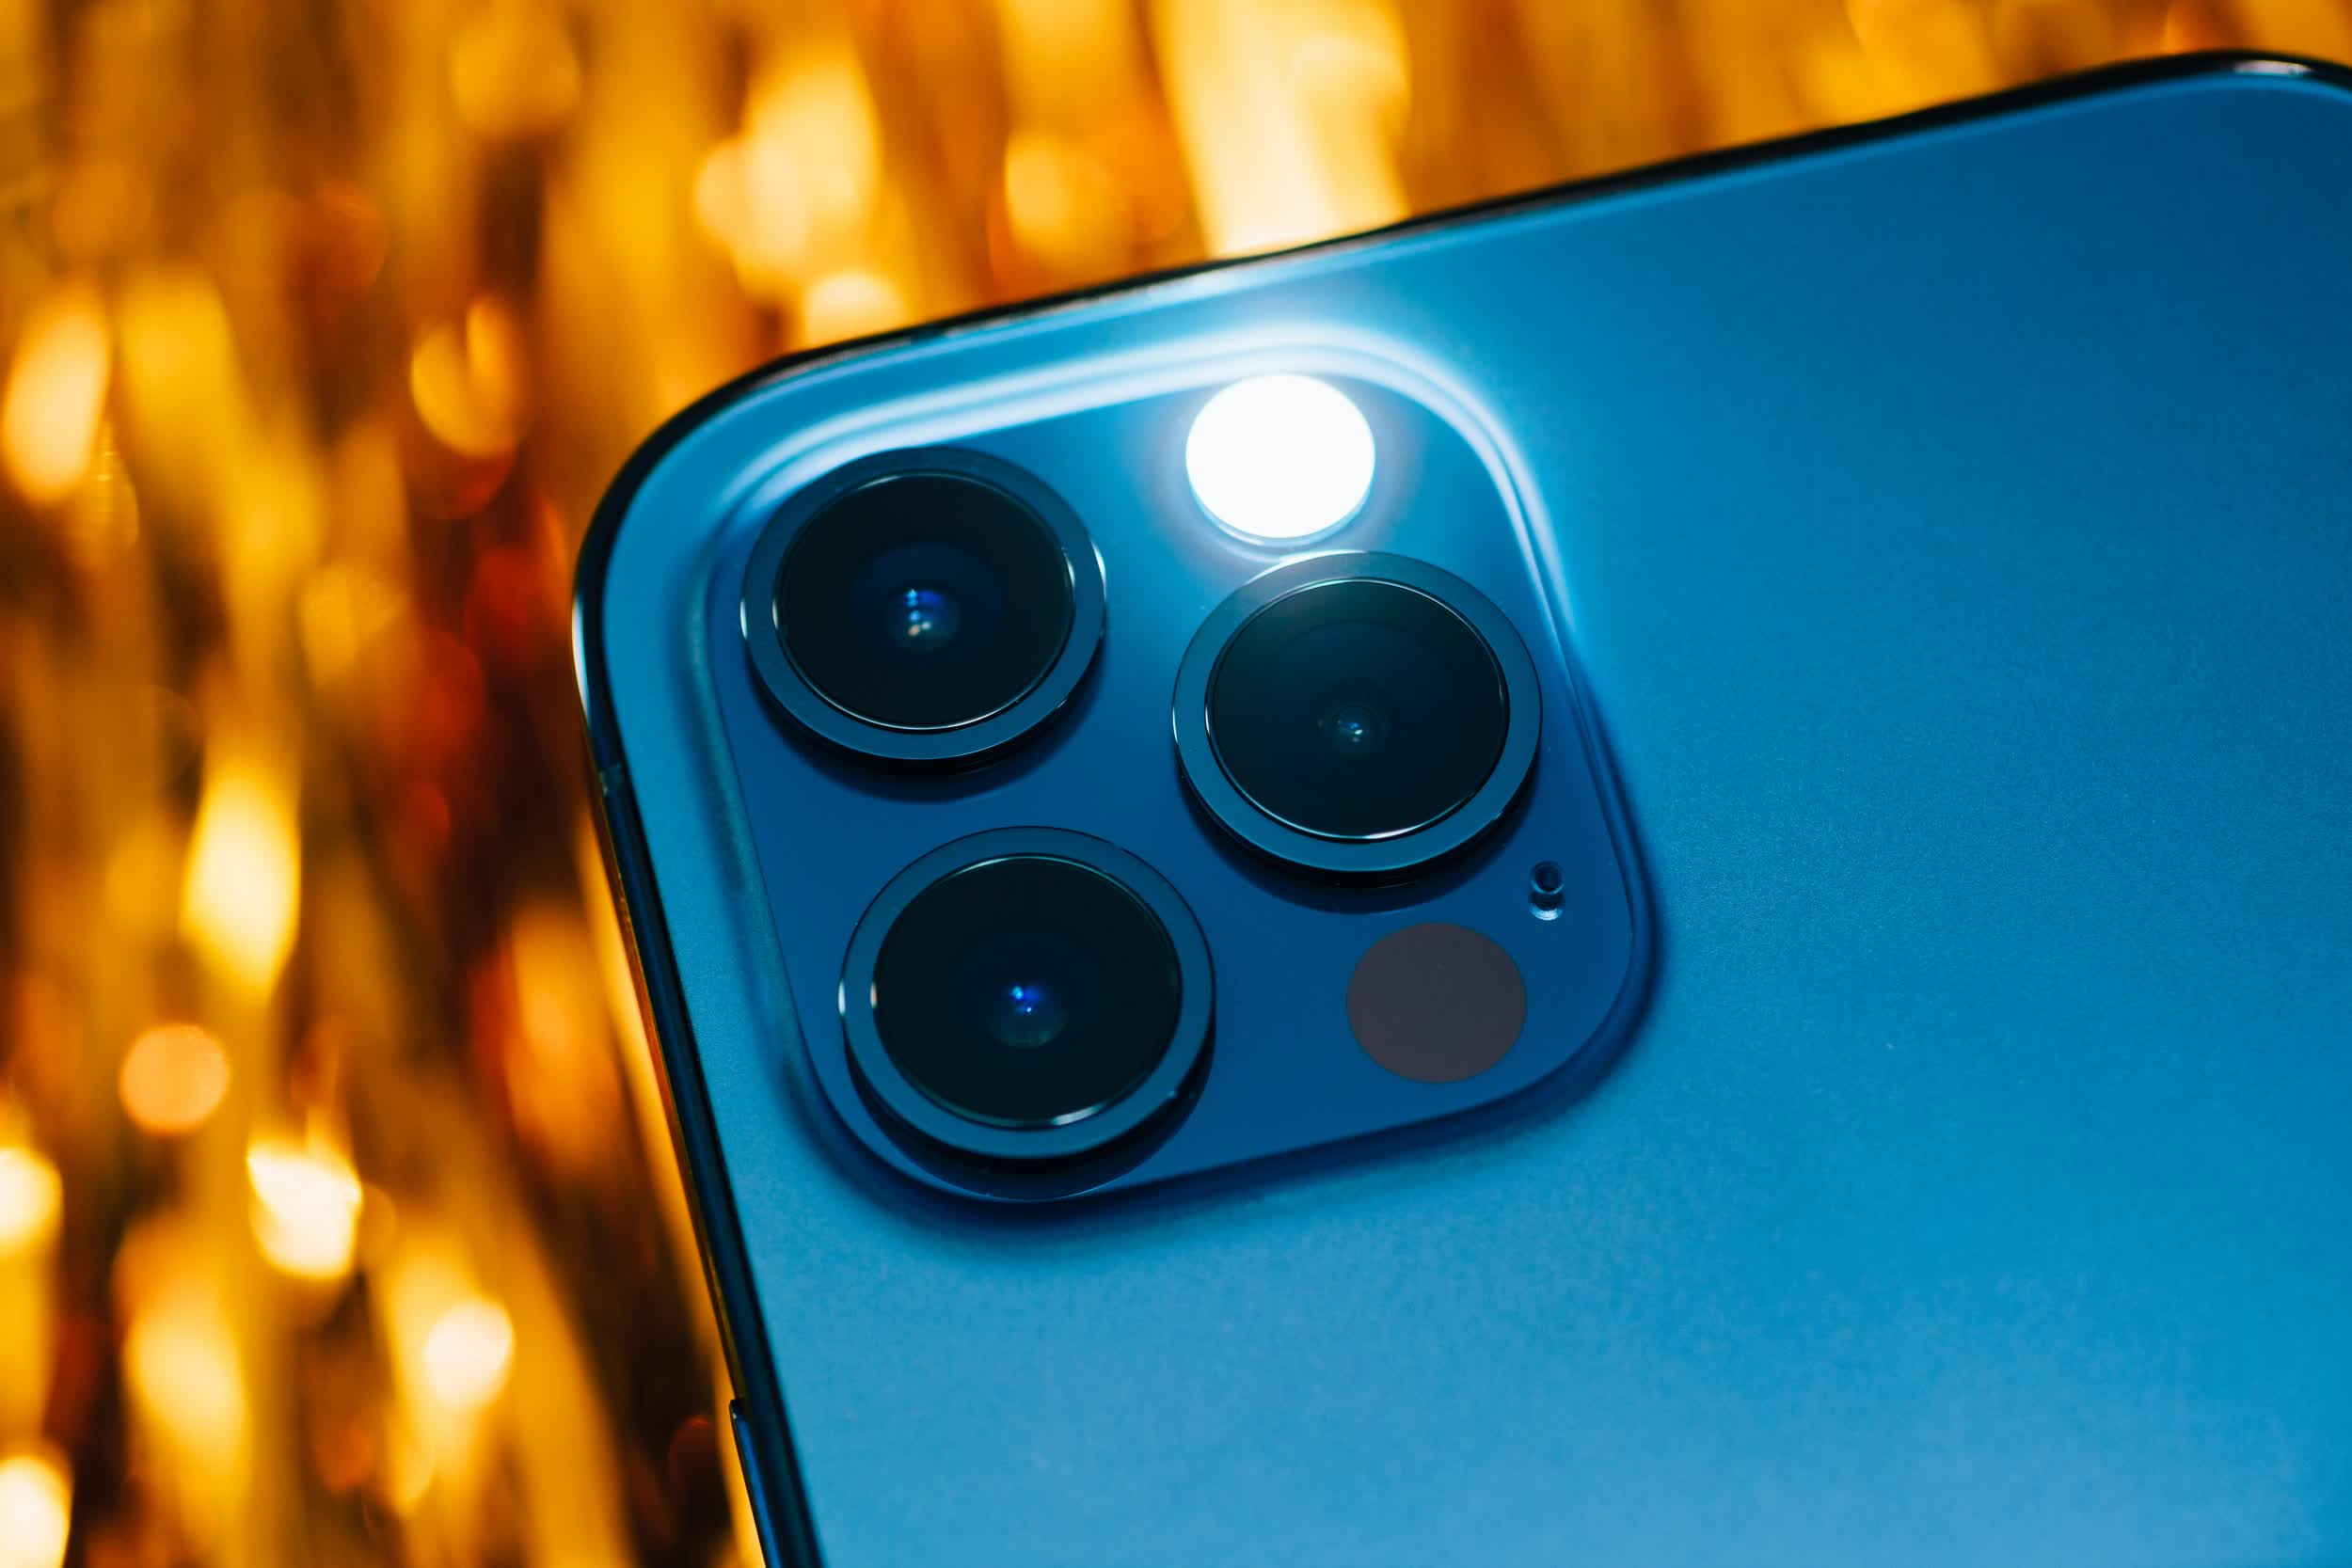 Apple iPhone 13 Pro rumored to ship with always-on display later this year